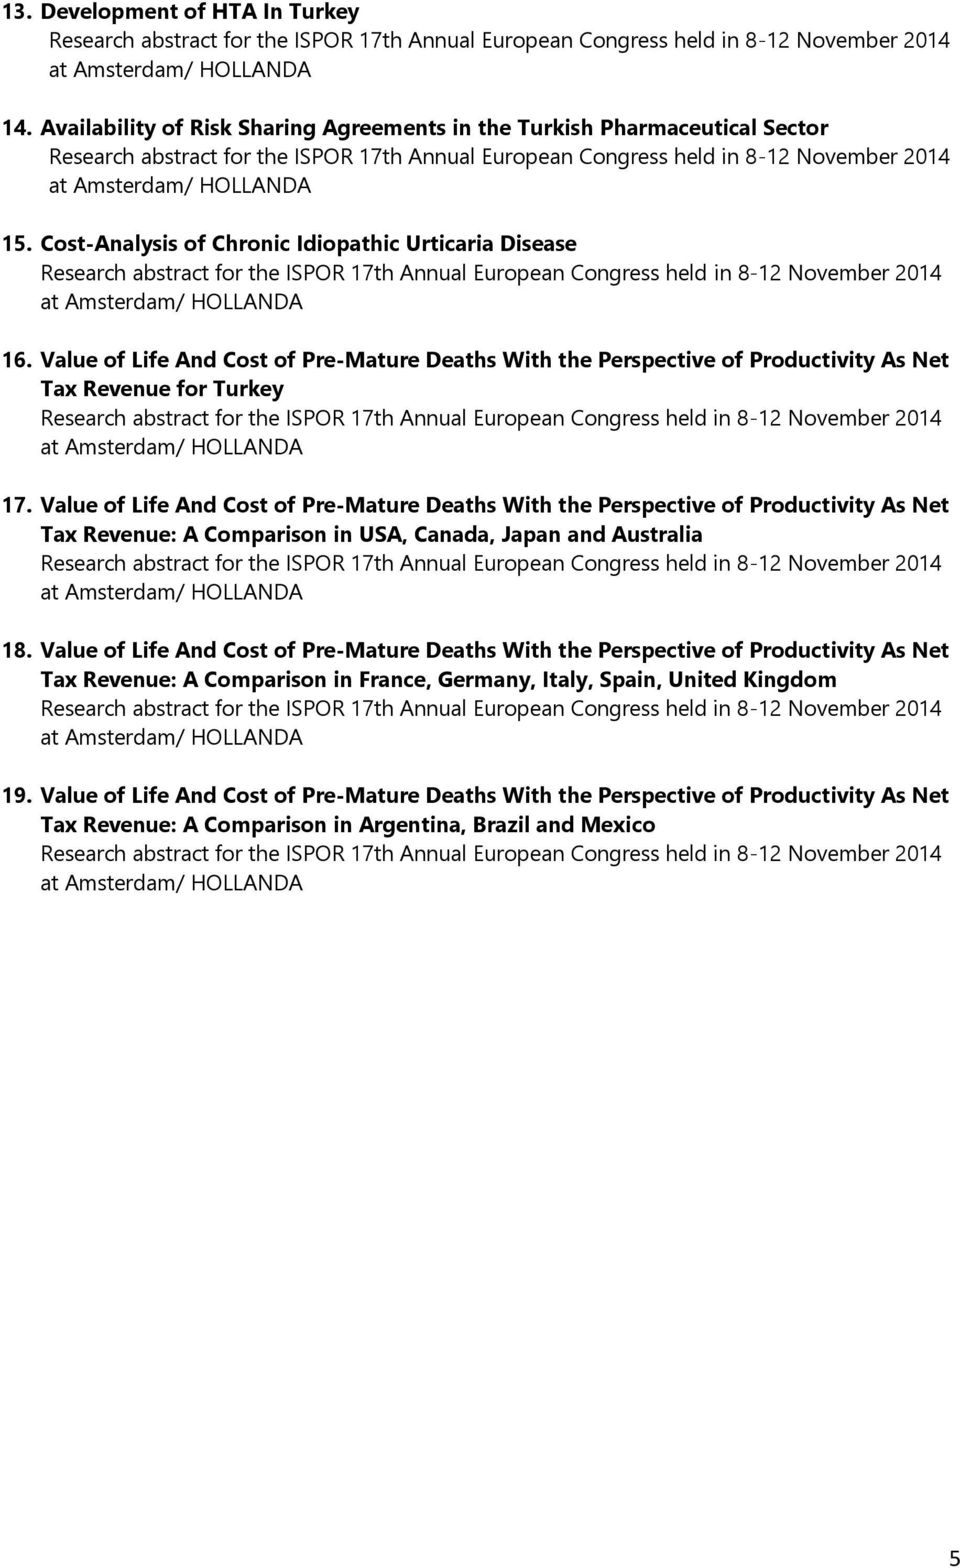 Value of Life And Cost of Pre-Mature Deaths With the Perspective of Productivity As Net Tax Revenue: A Comparison in USA, Canada, Japan and Australia 18.